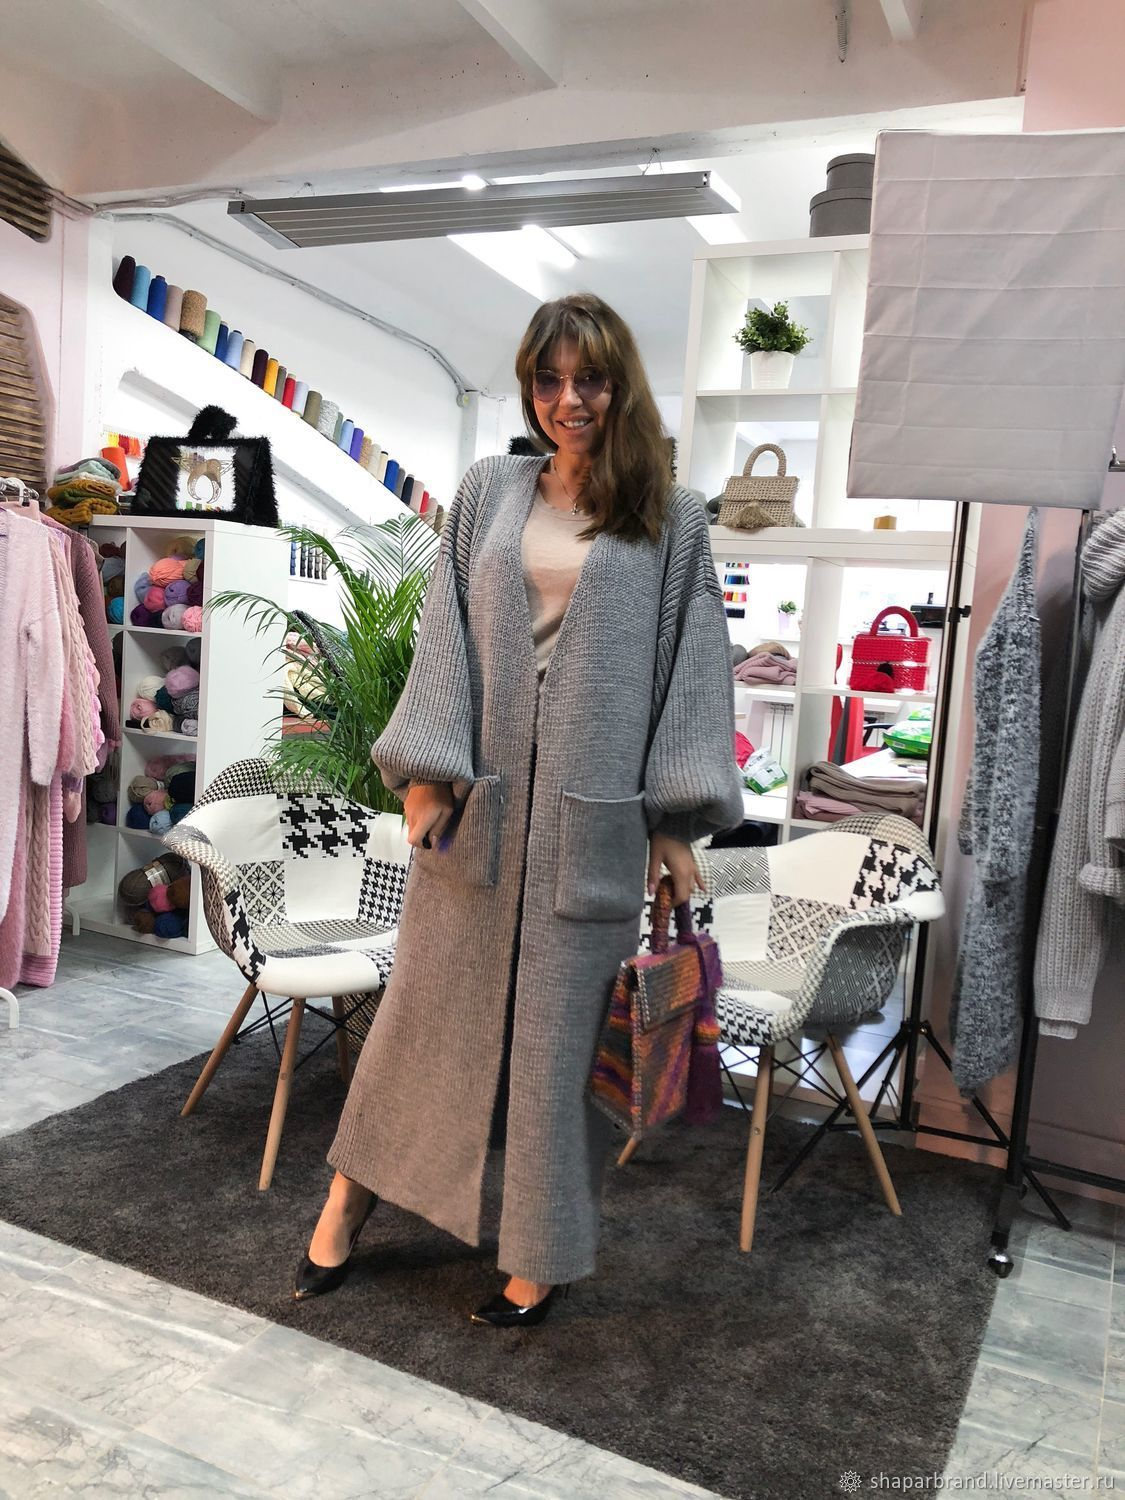 In pictures of women's long cardigan with pockets from Shapar, Brenda J. Ojeda women knitted handmade